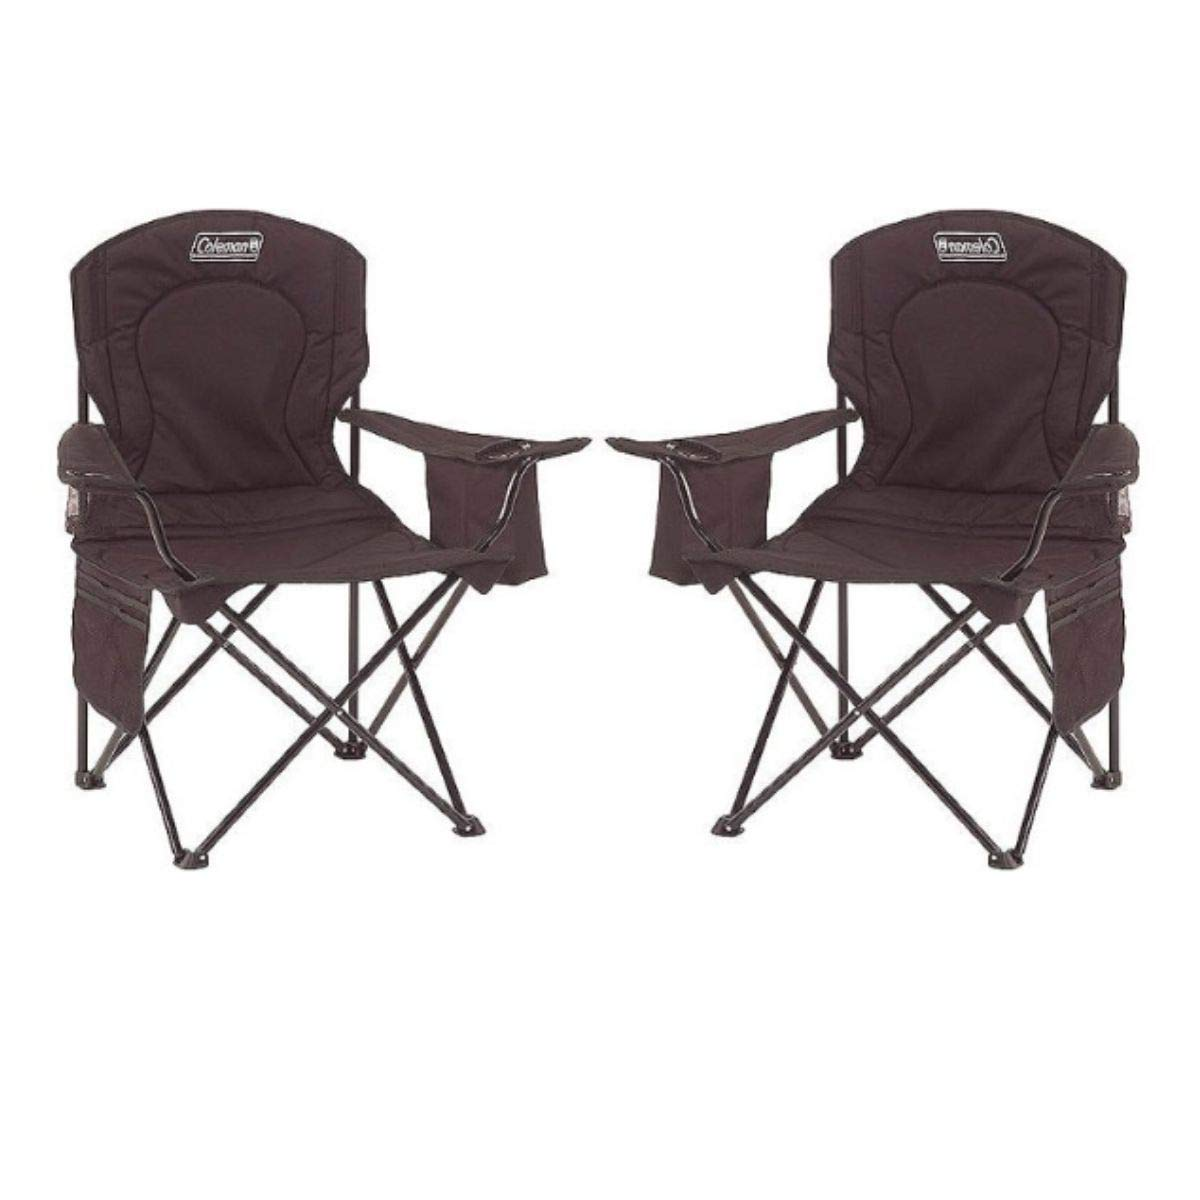 Coleman Oversized Quad Chair with Cooler Pouch (Black/Set of 2)